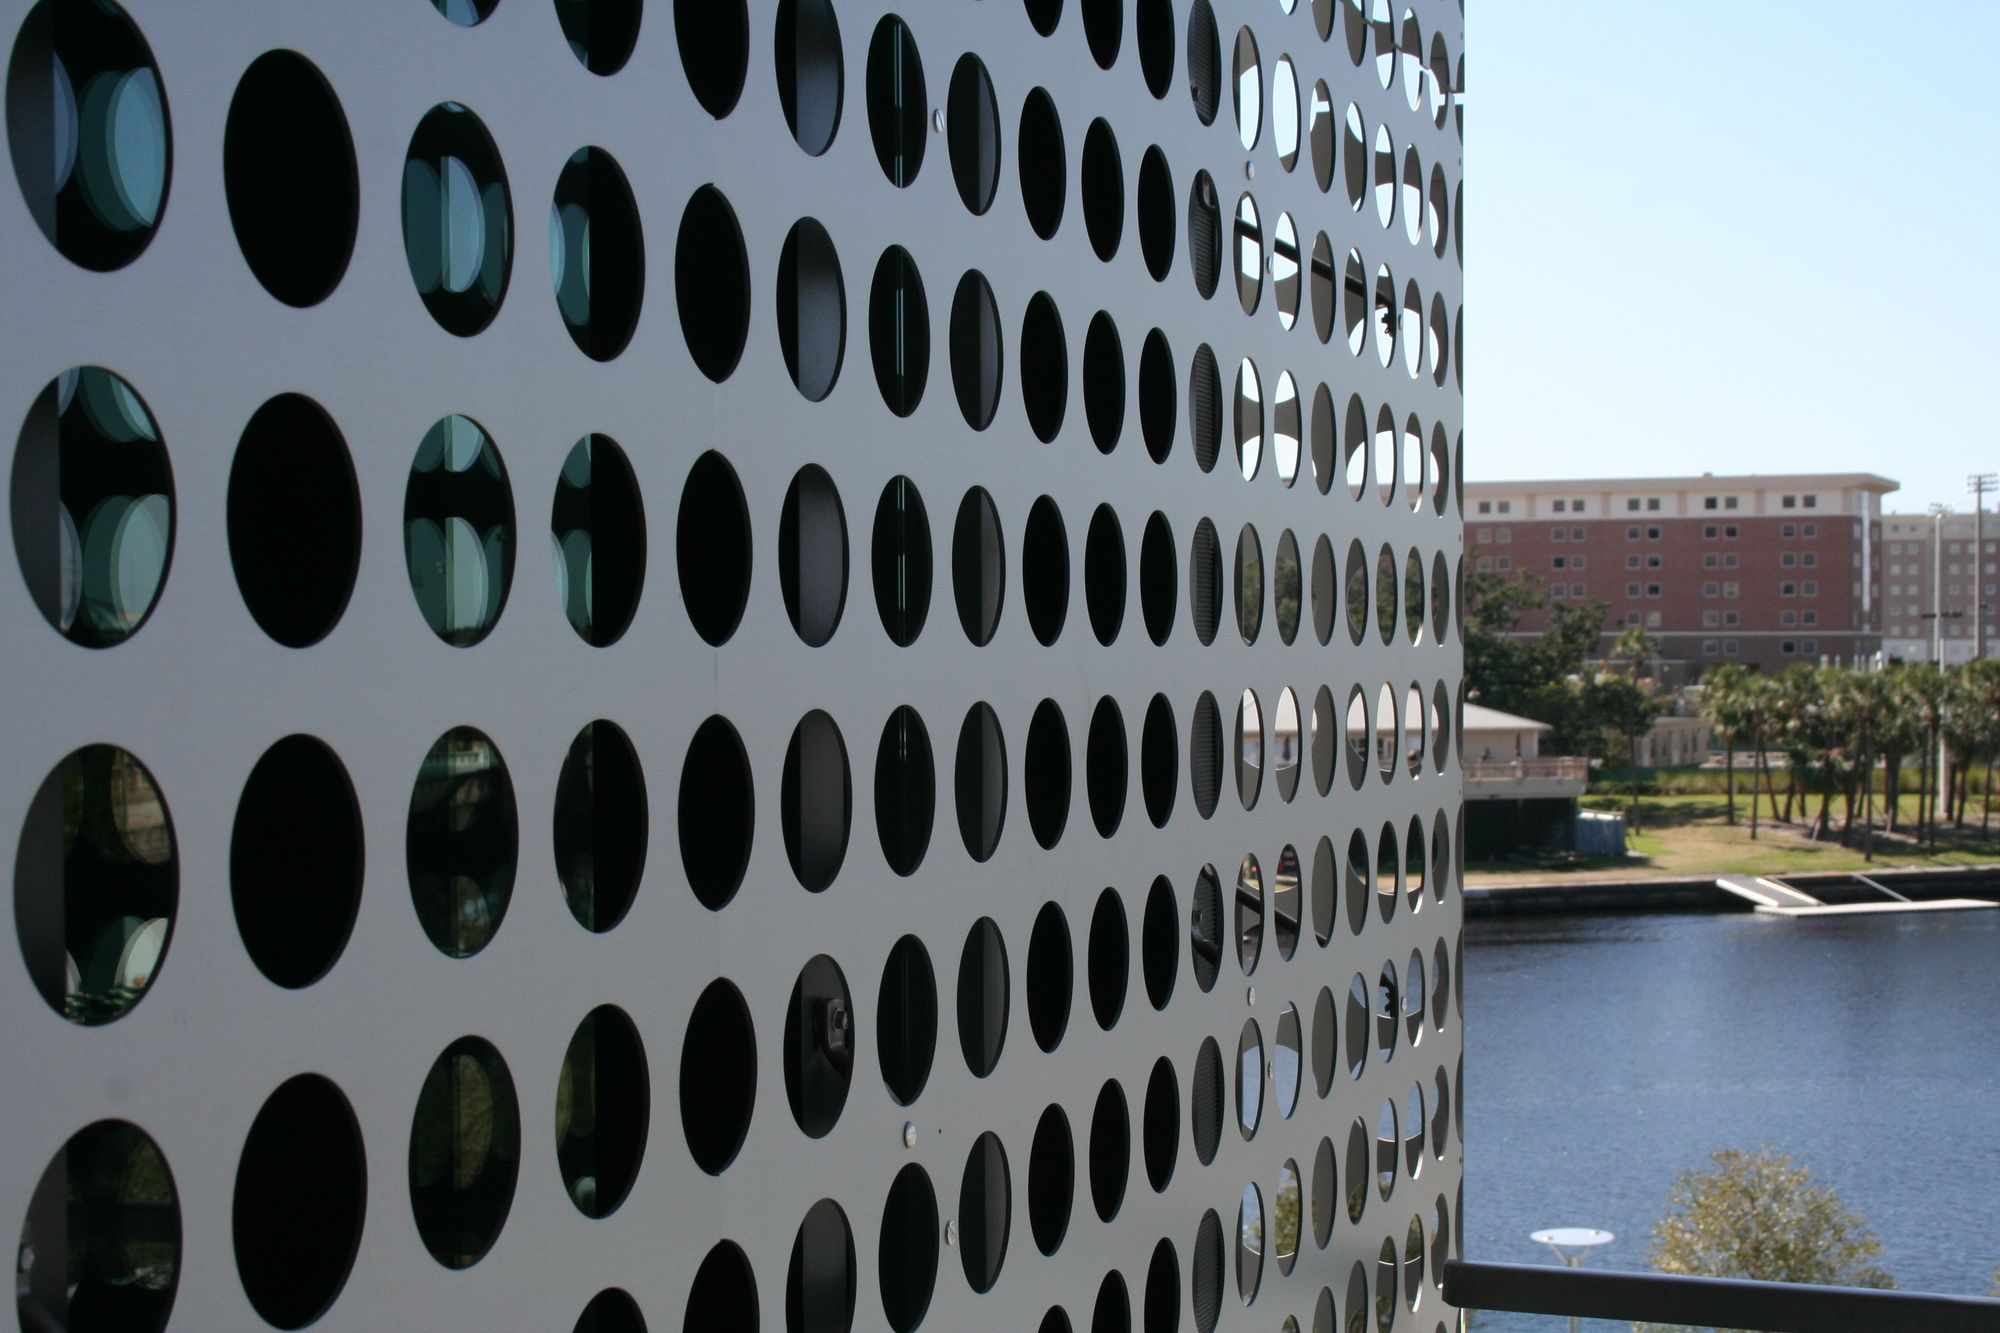 Aluminum Perforated Metal anodized for corrosion-resistance and a smooth appearance | Tampa Museum of Art